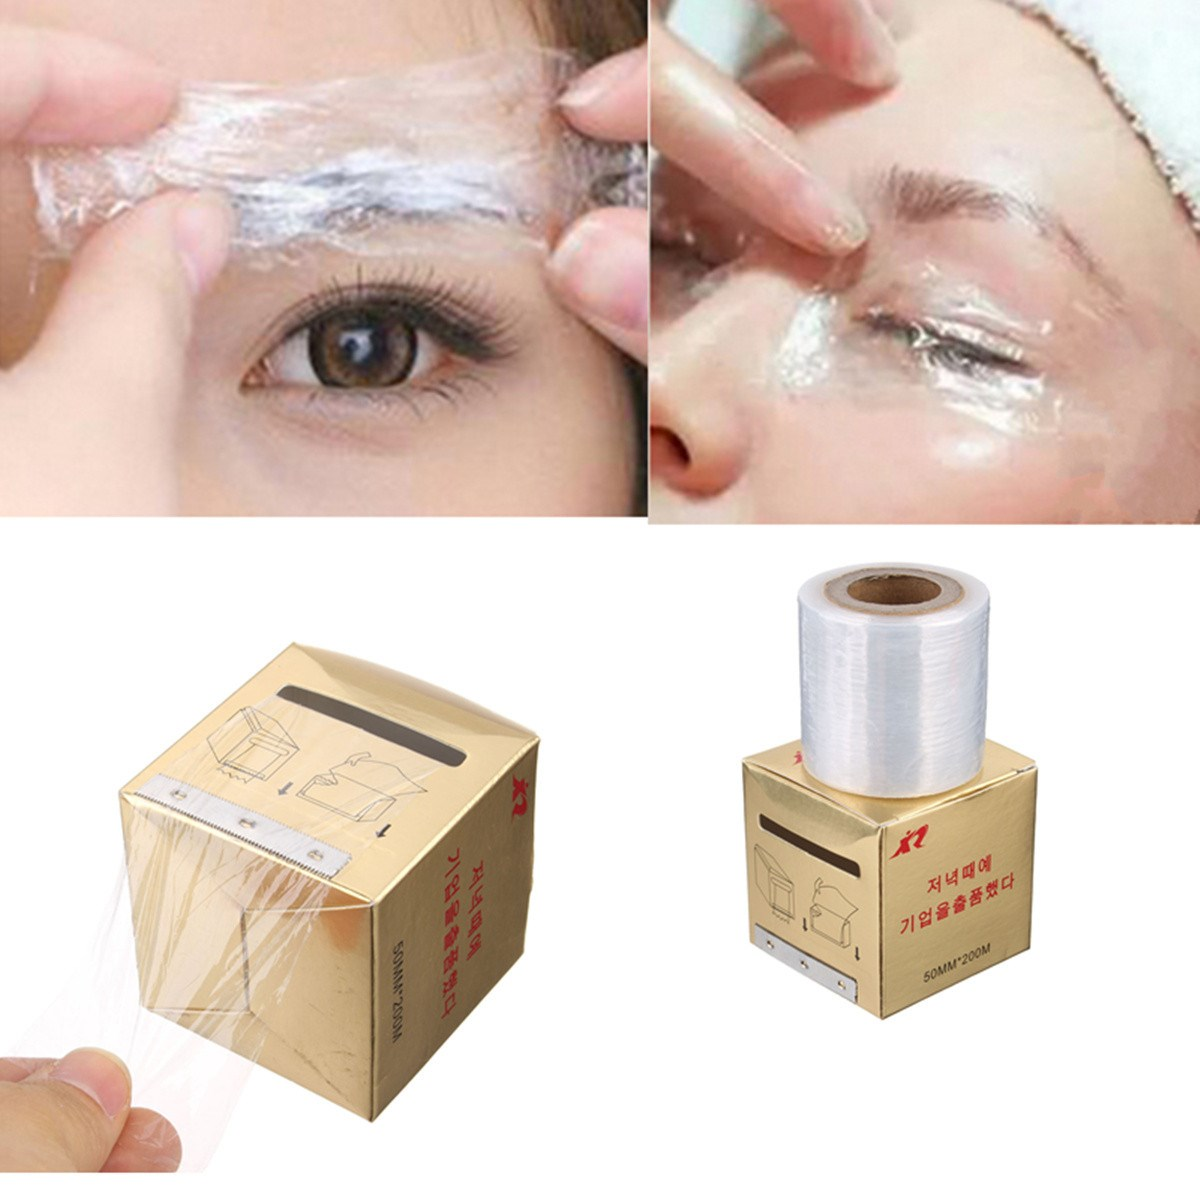 New 1Box Tattoo Plastic Wraps Cover Preservative Film Semipermanent Makeup Tattoos Eyebrow Liner Tattoo Accessory 50MM